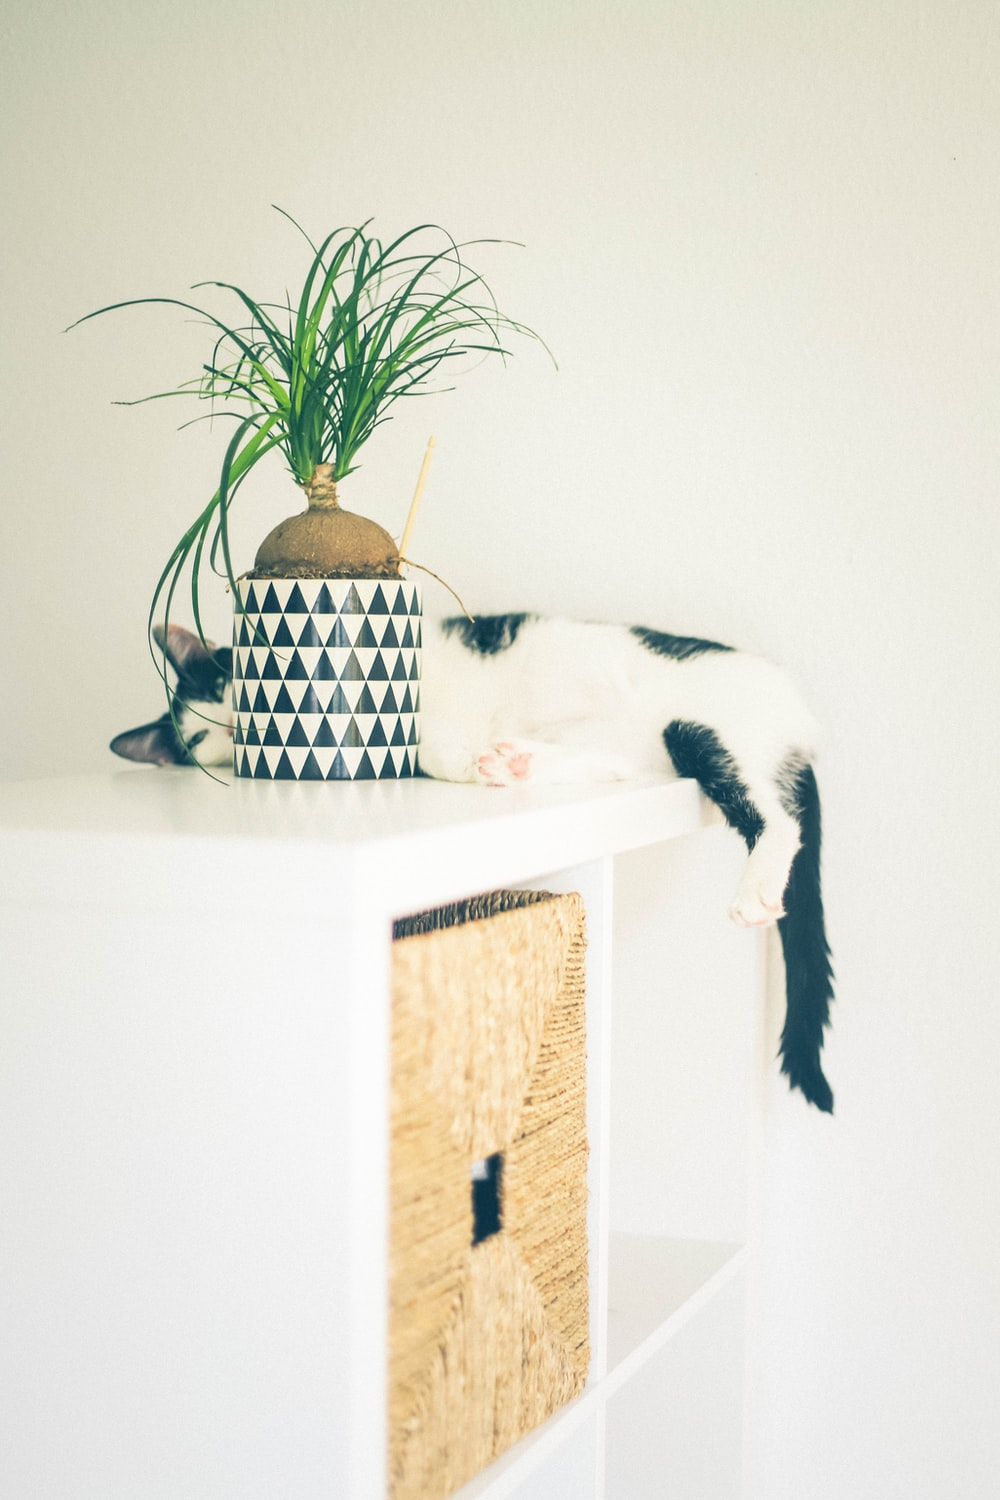 white and black cat on white wooden table